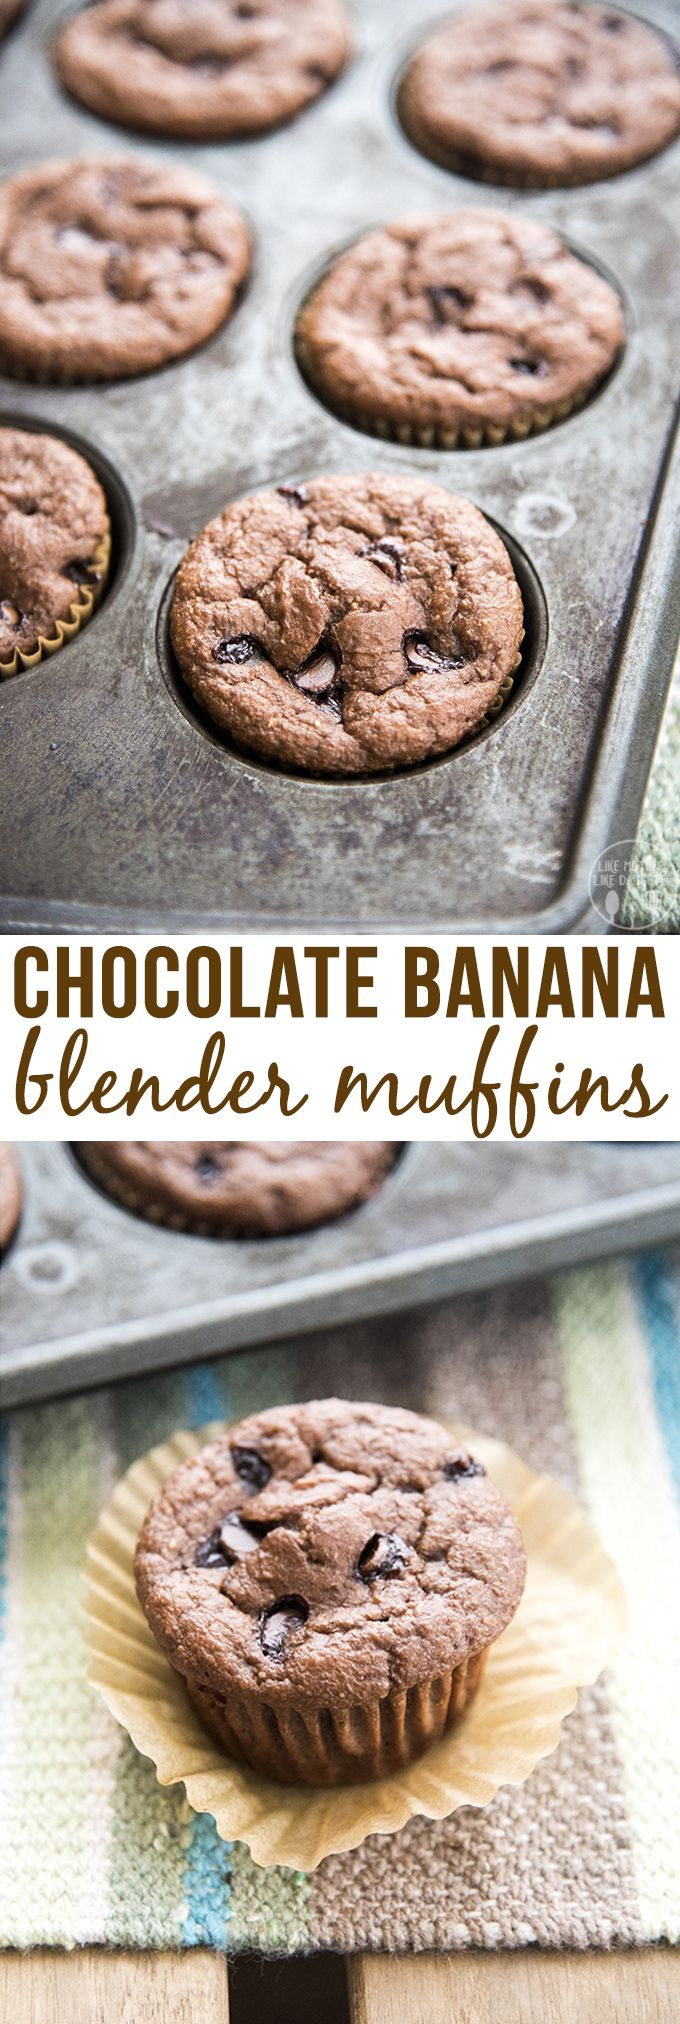 These healthier for you chocolate banana blender muffins are only a few ingredients, with no refined sugar, no white flour and no oil and are perfect for a delicious snack or breakfast! Pin these chocolate banana blender muffins for later! With the new year, many of us are looking for ways to cut back and...Read More »